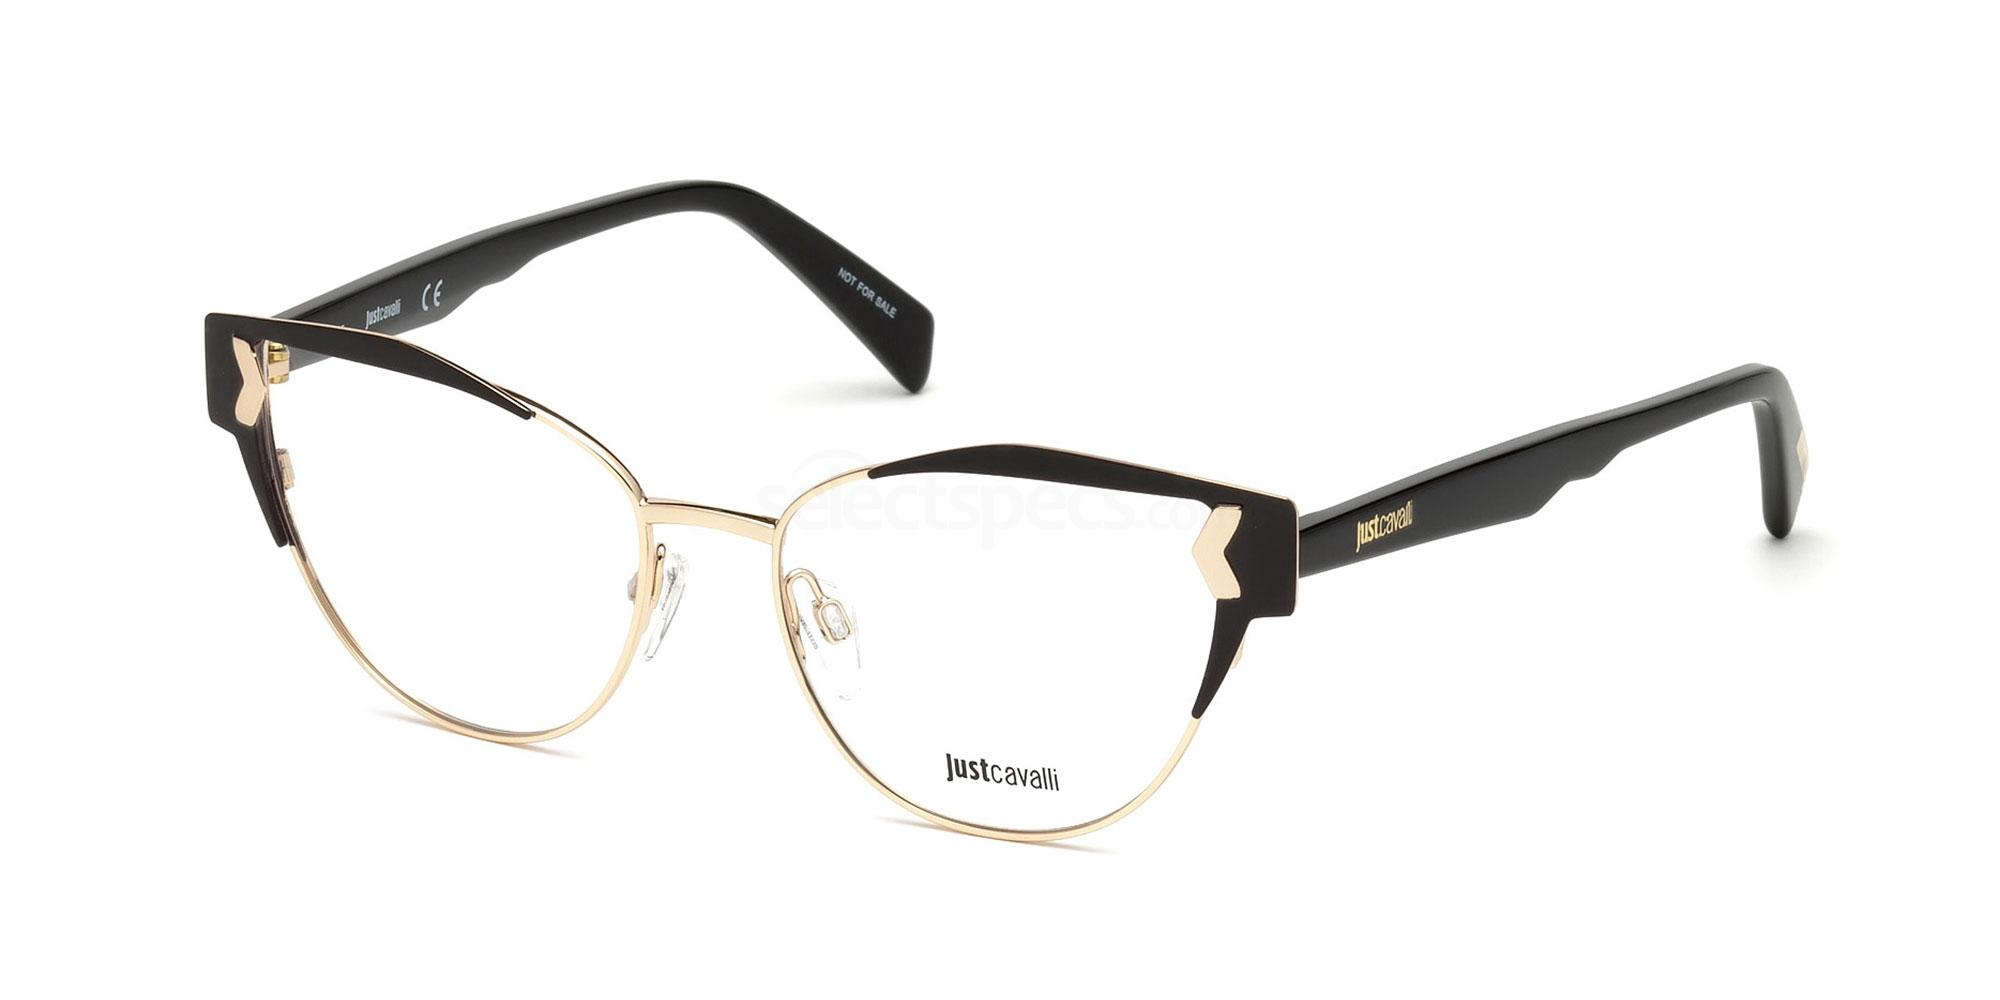 028 JC0816 Glasses, Just Cavalli